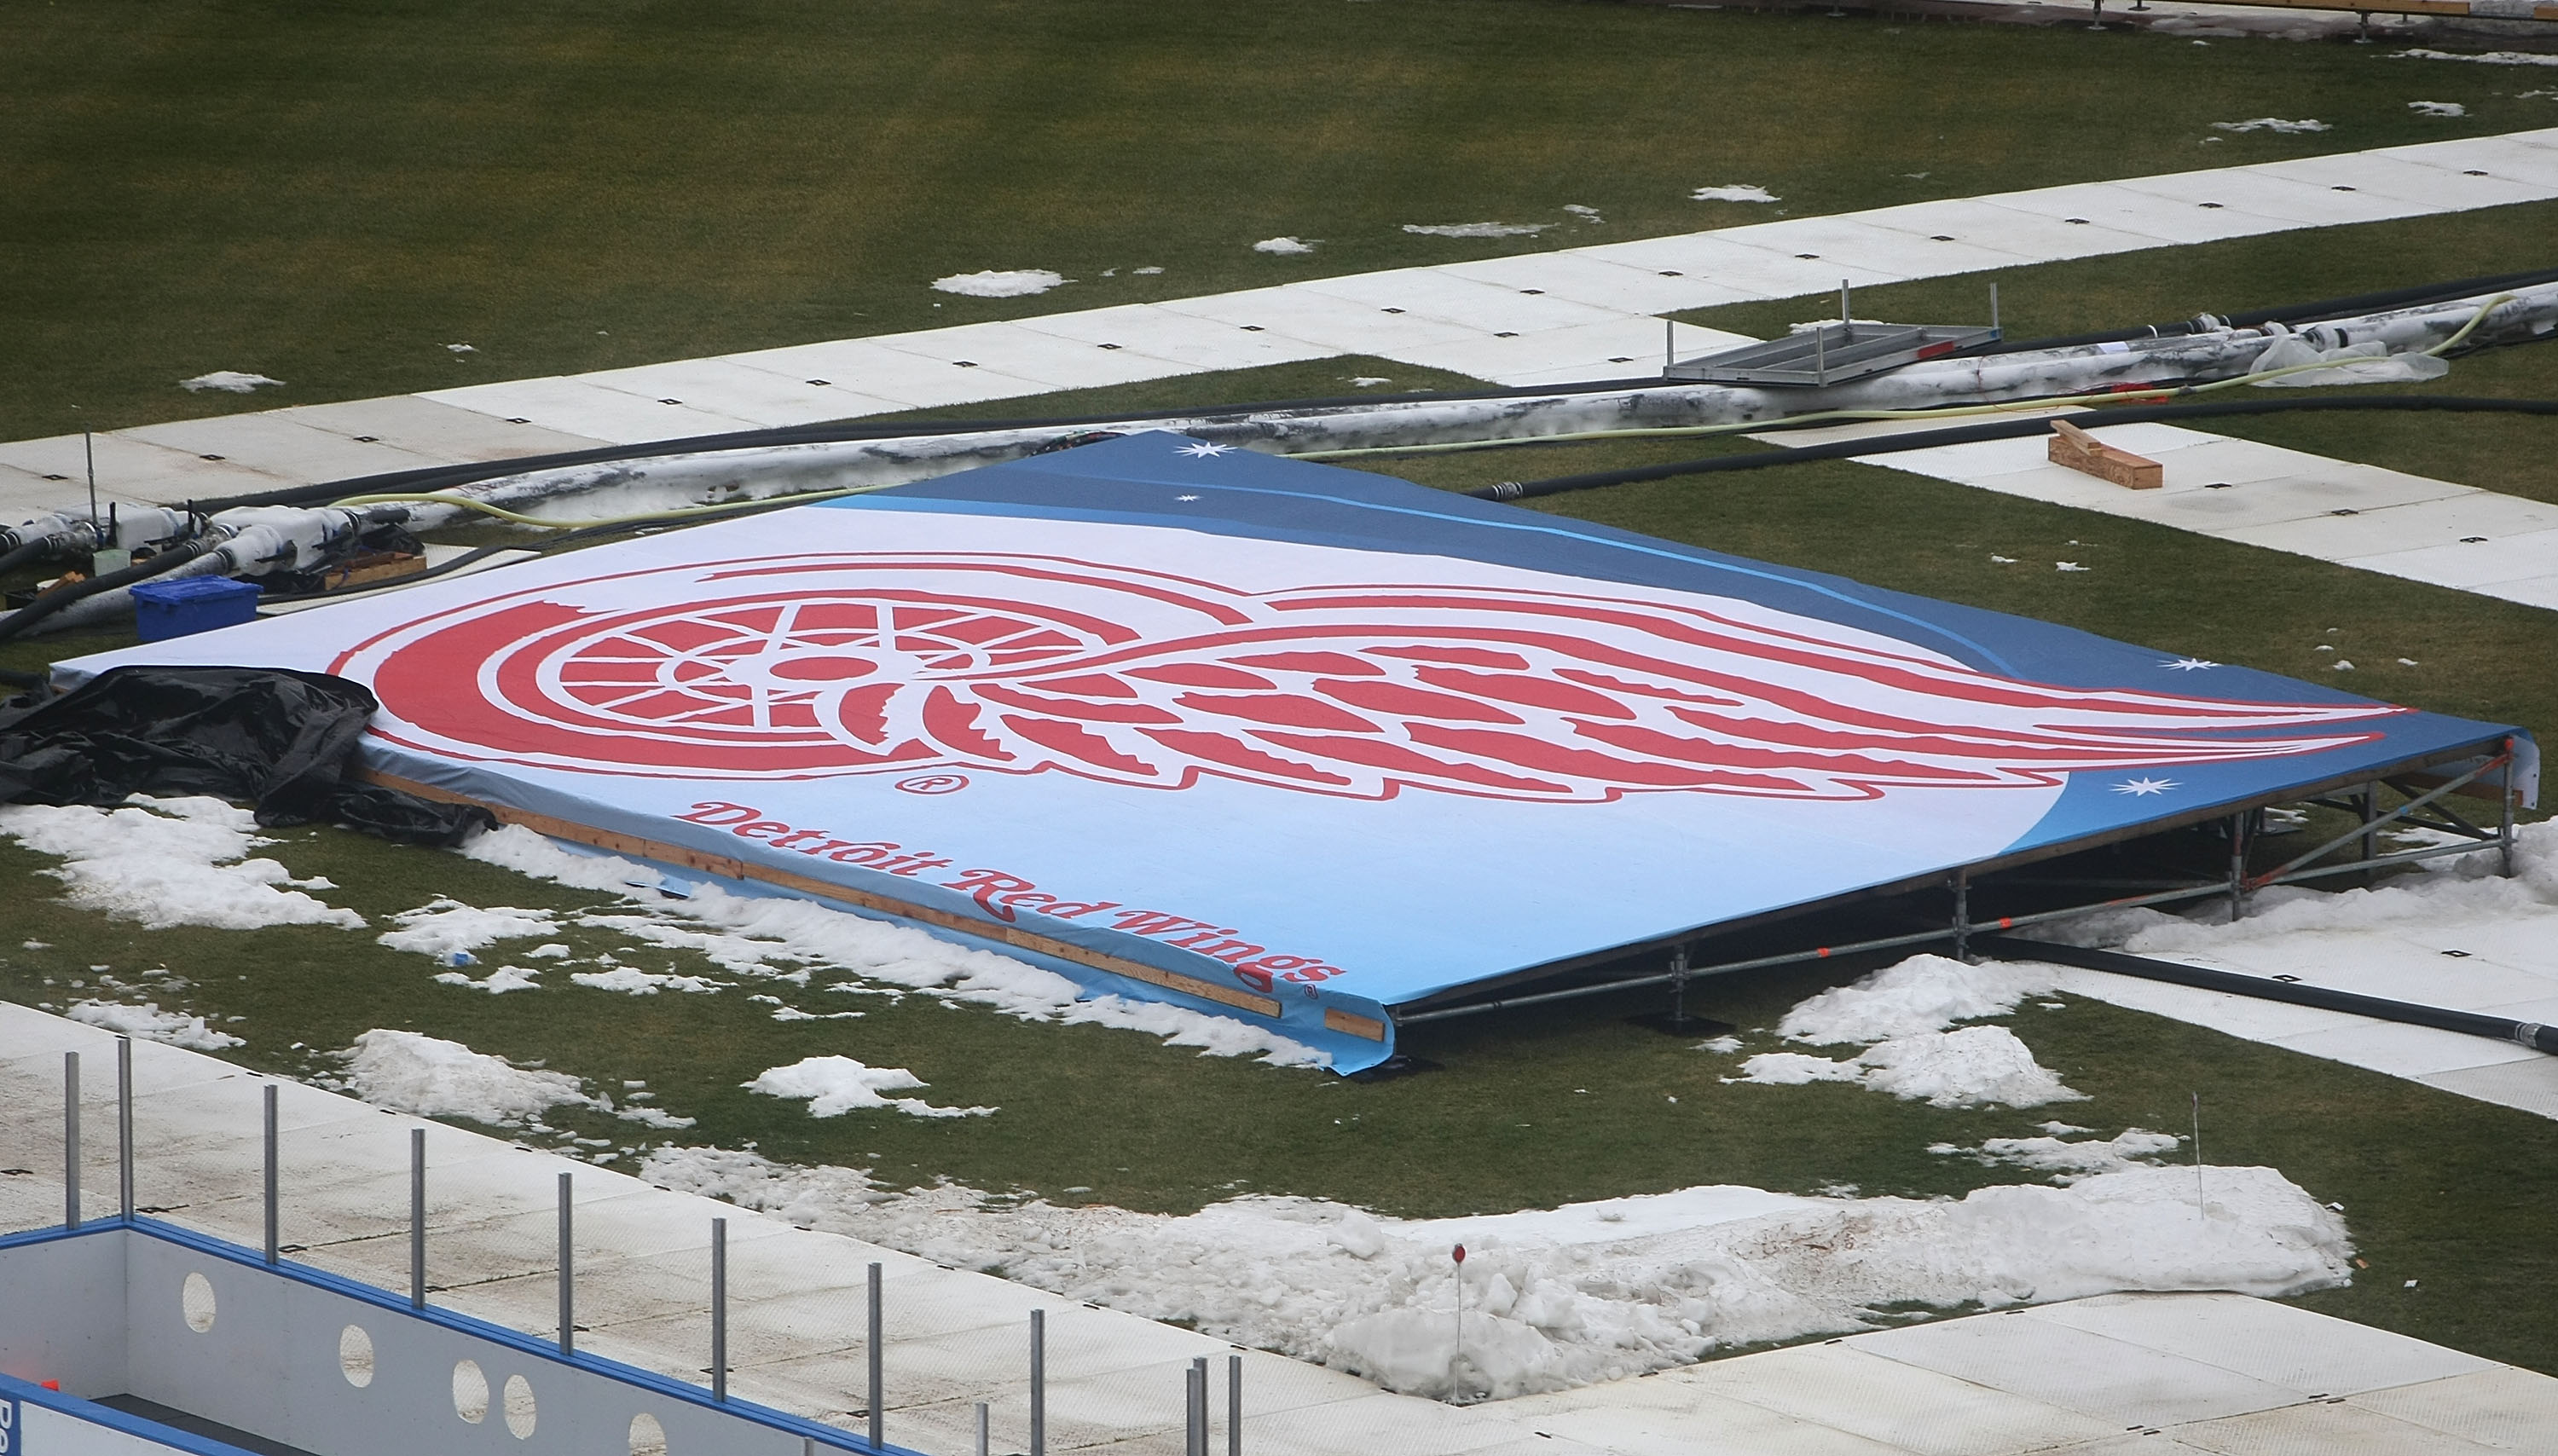 CHICAGO - DECEMBER 27: A Detroit Redwings logo is seen as preparations continue during a media availability for the 2009 NHL Winter Classic on December 27, 2008 at Wrigley Field in Chicago, Illinois. The Winter Classic will feature the Chicago Blackhawks